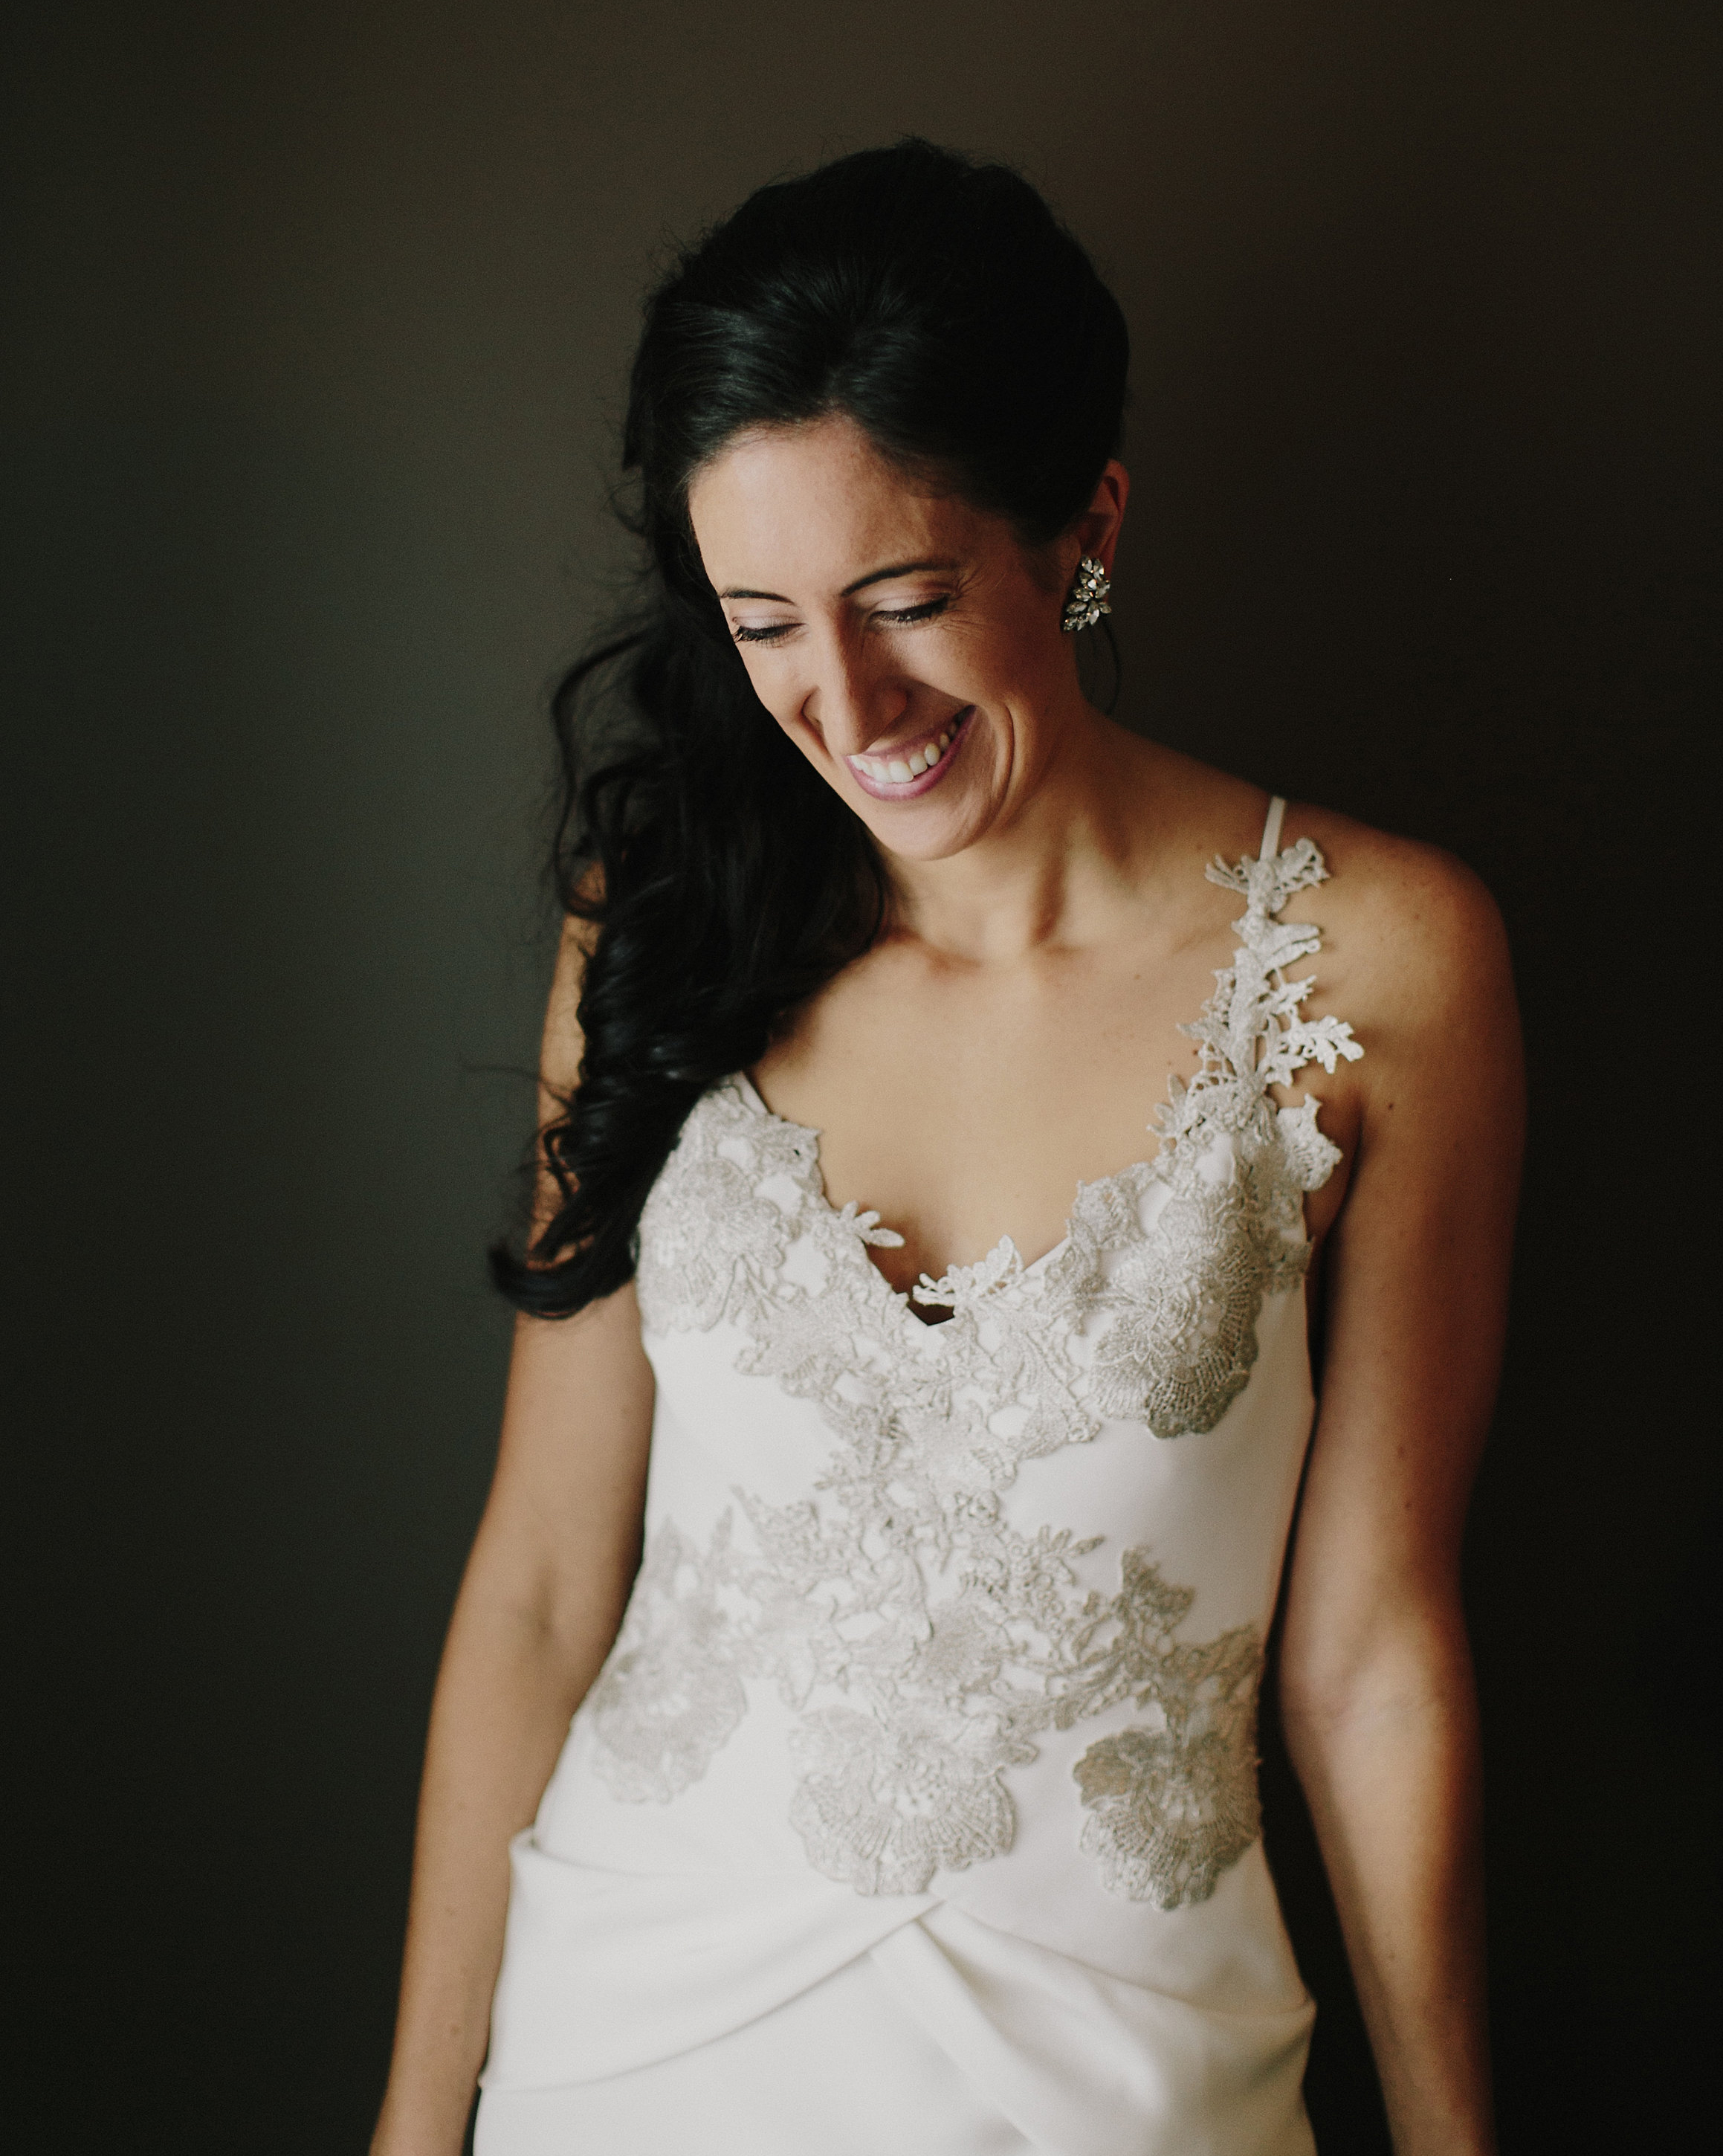 rosie-constantine-wedding-bride-044-s112177-1015.jpg